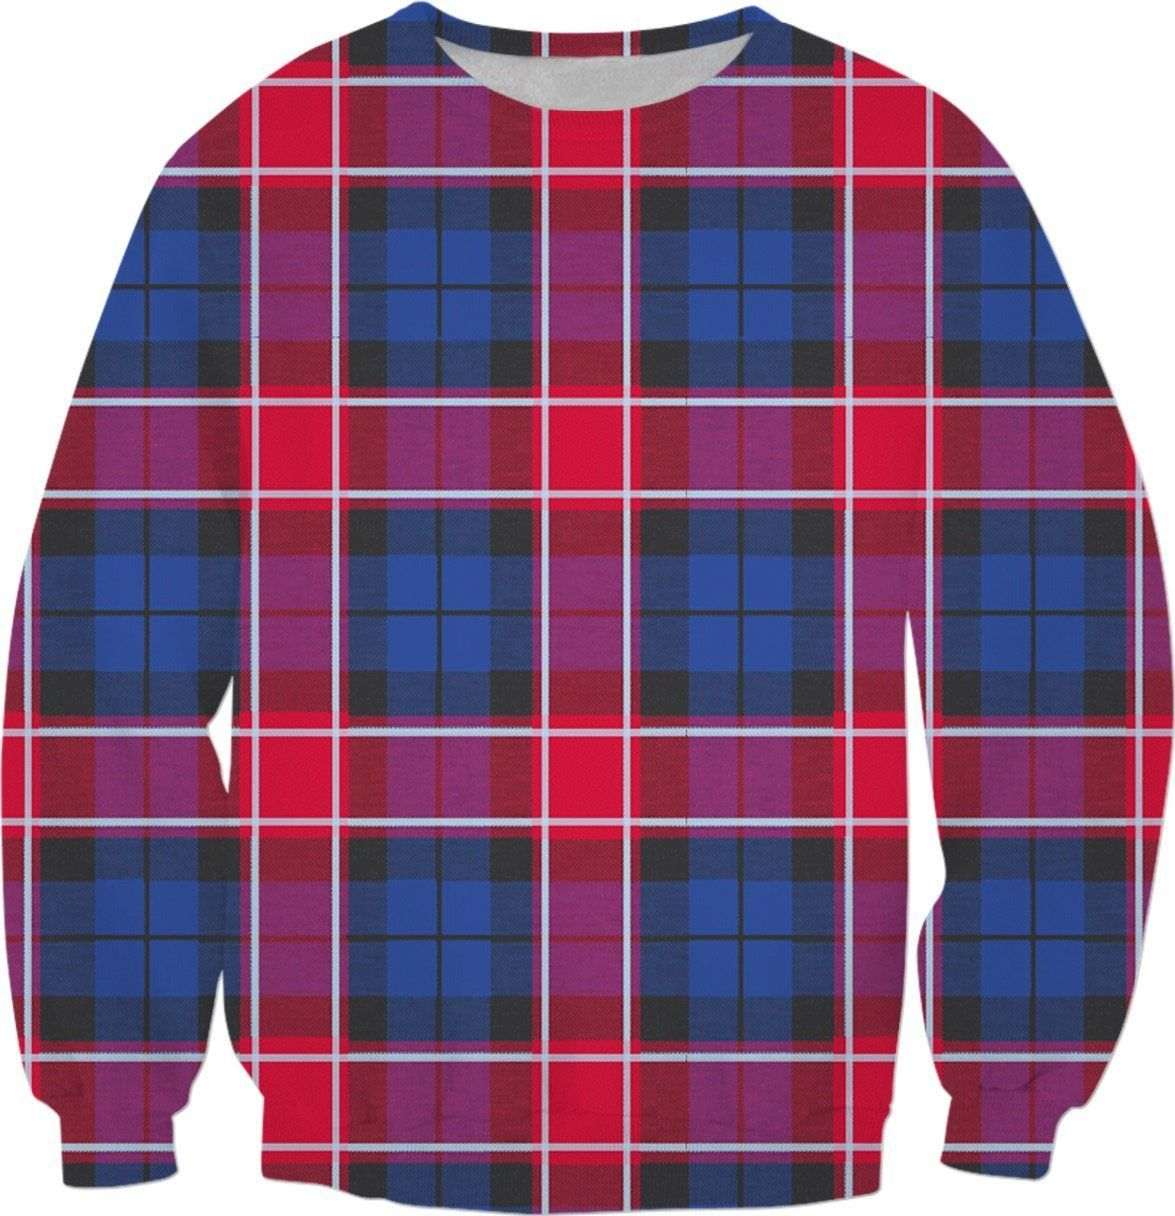 GRAHAM OF MENTEITH RED TARTAN SWEATSHIRT S1 | Products | Pinterest